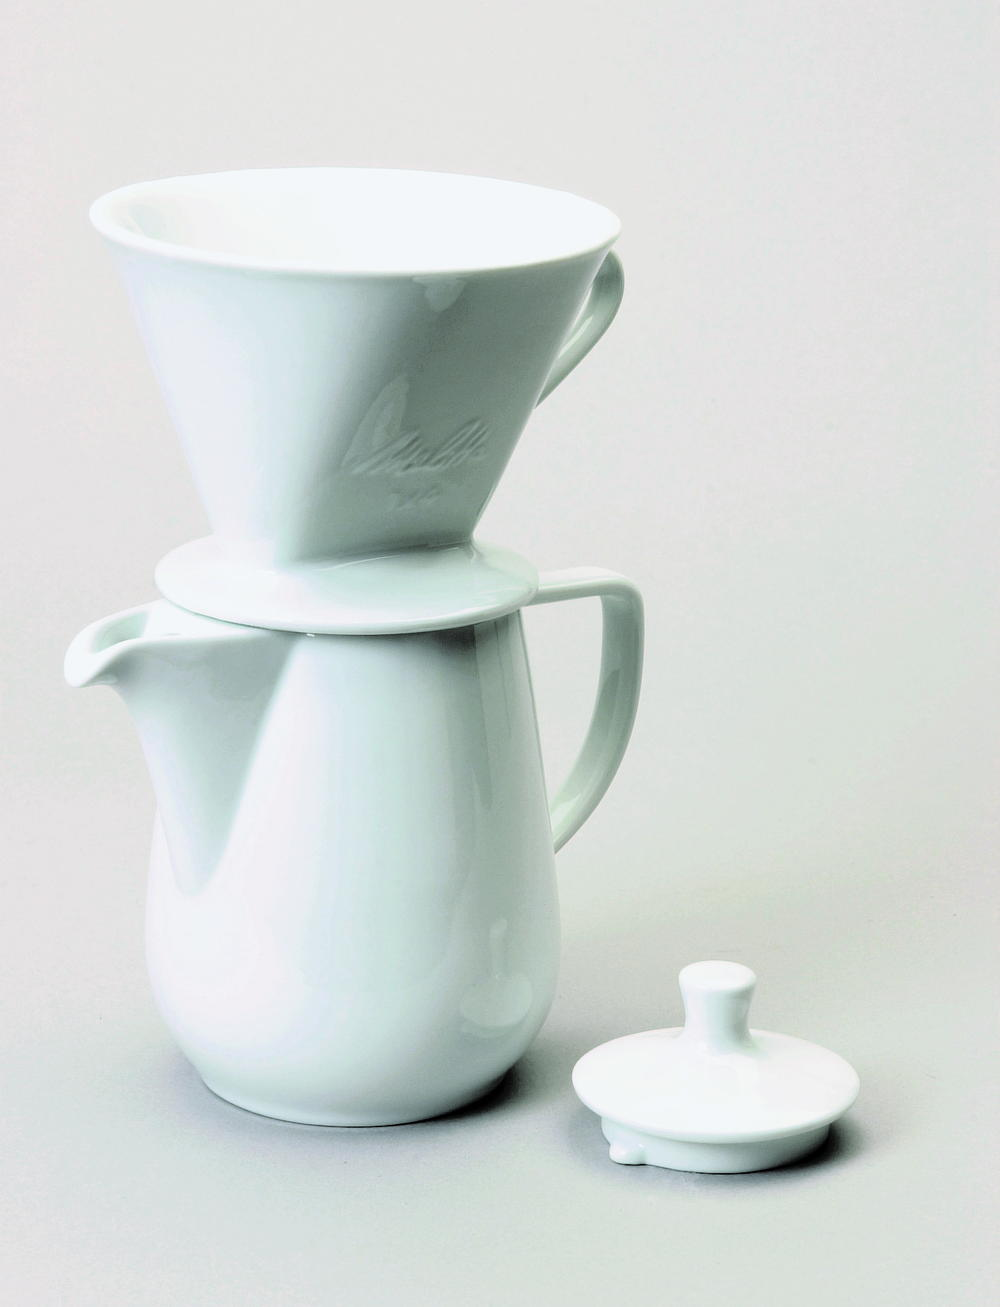 melitta pour over coffee maker review